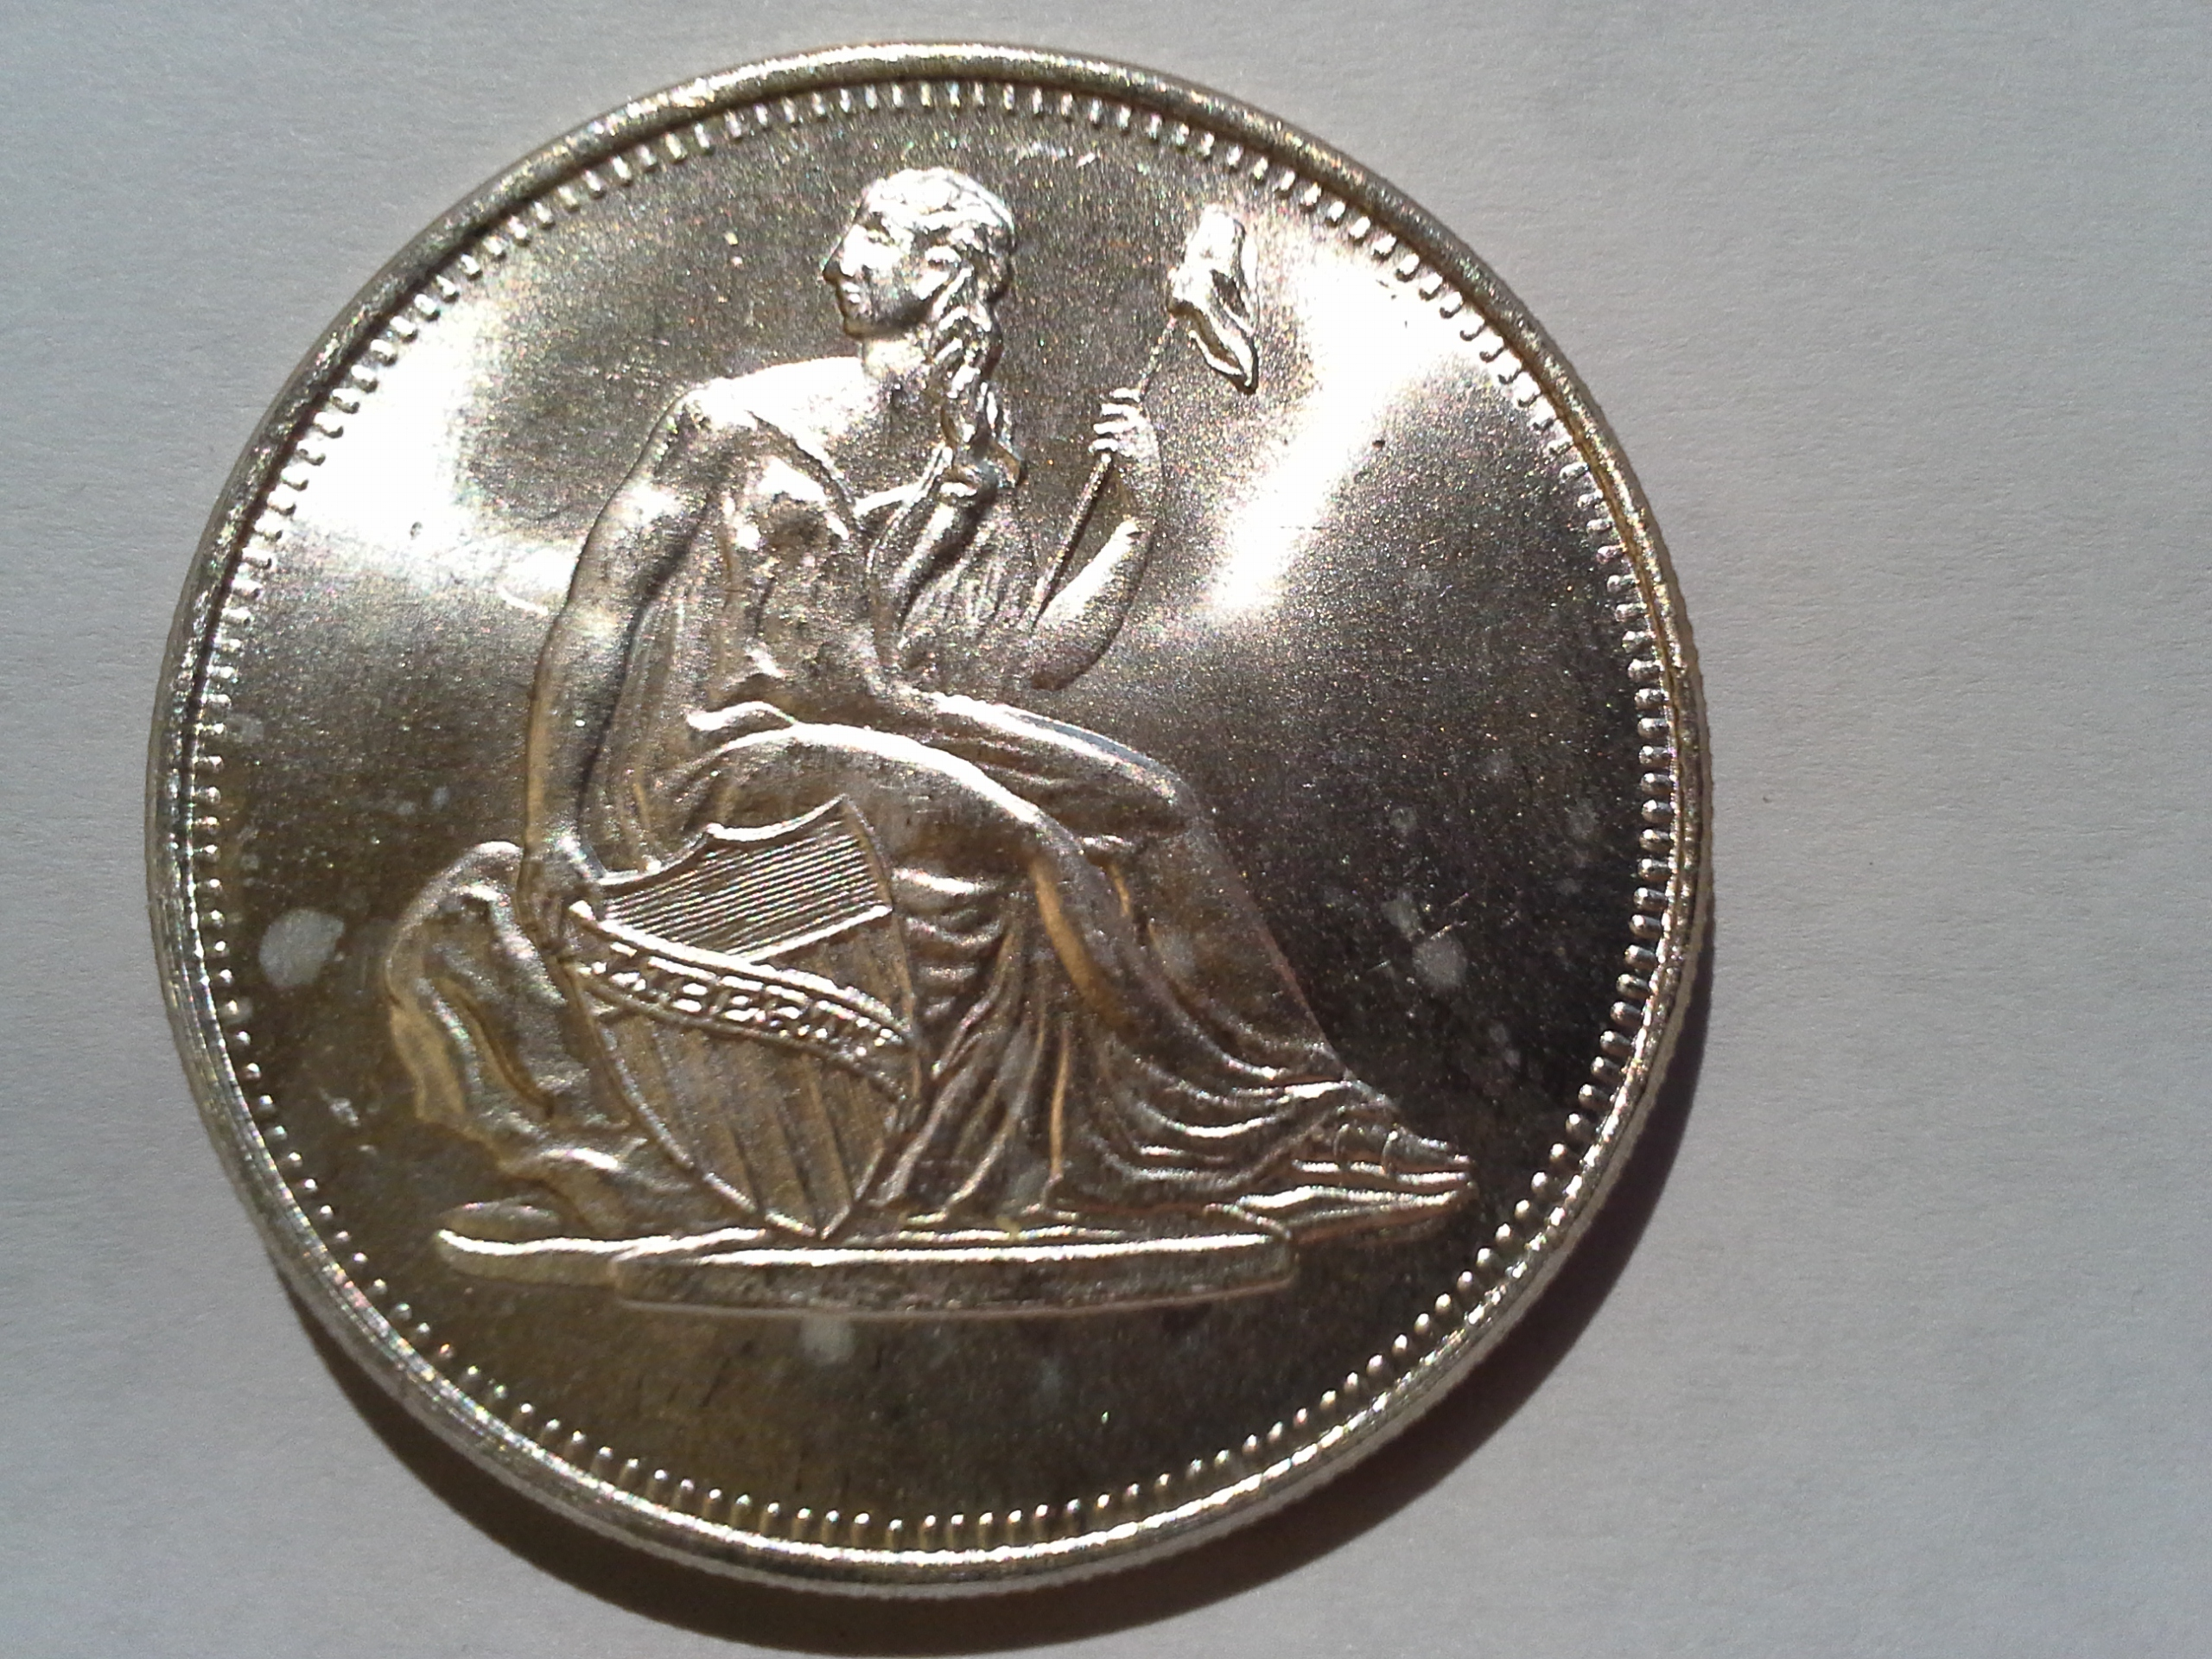 1 Troy Oz 999 Fine Silver Seated Lady Liberty 1800 S Us Dime Design Round The Mint